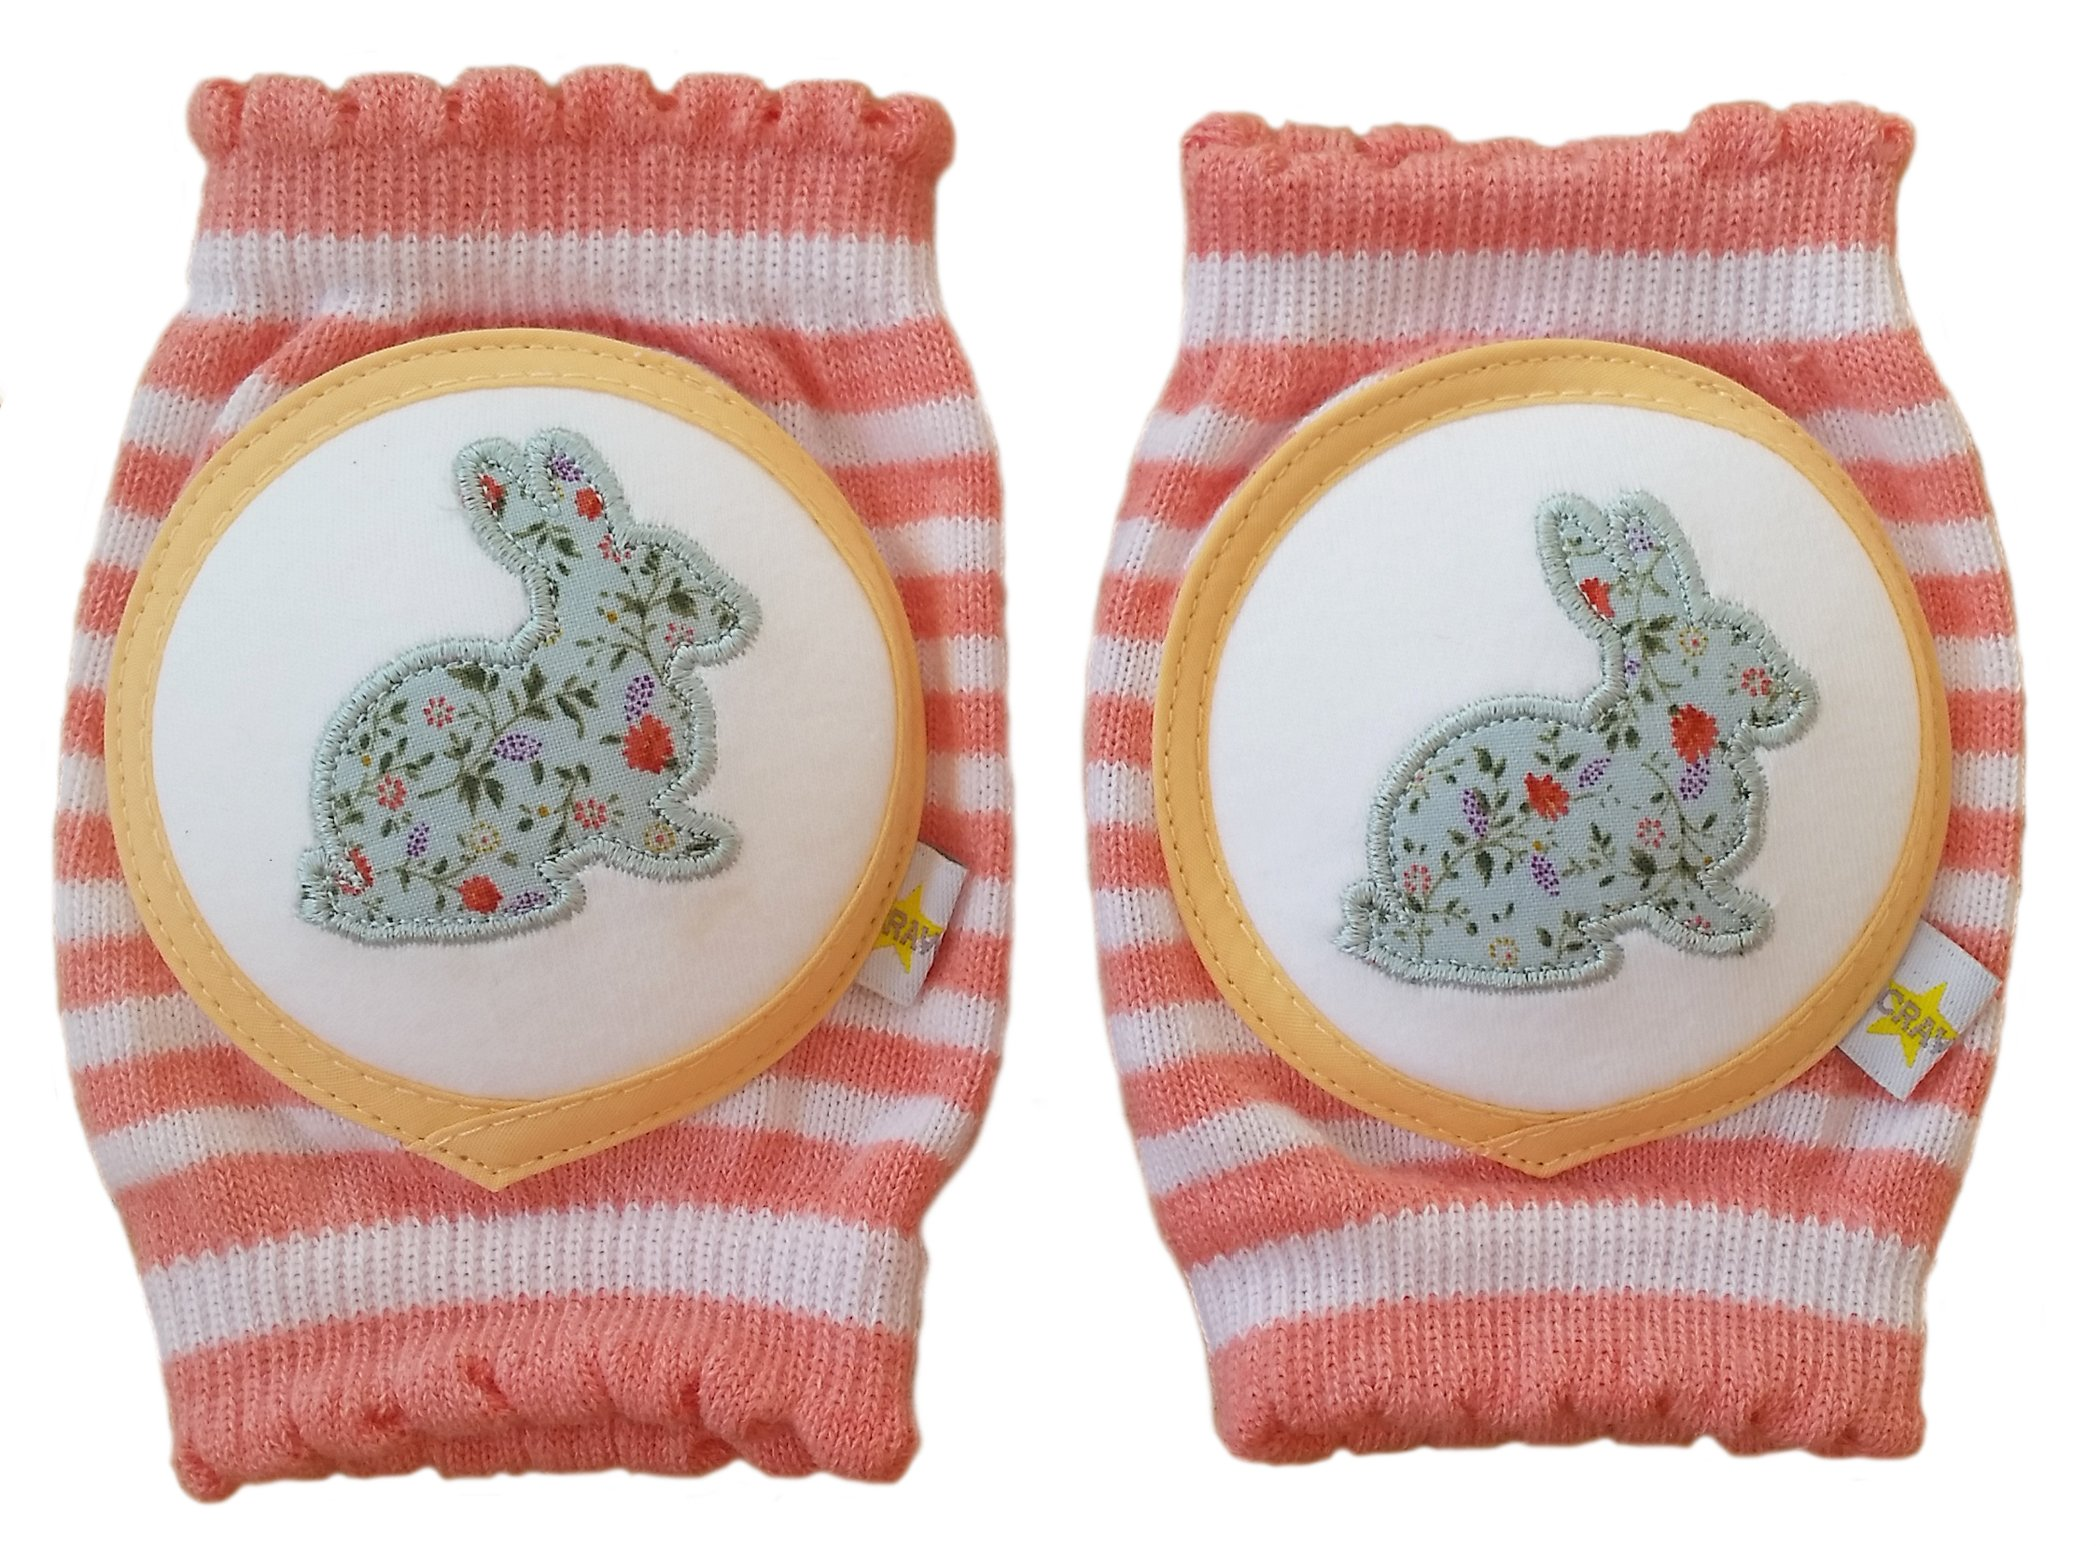 Crawlings Girl's Rabbit Knee Pads One Size Cherry Pink by Crawlings